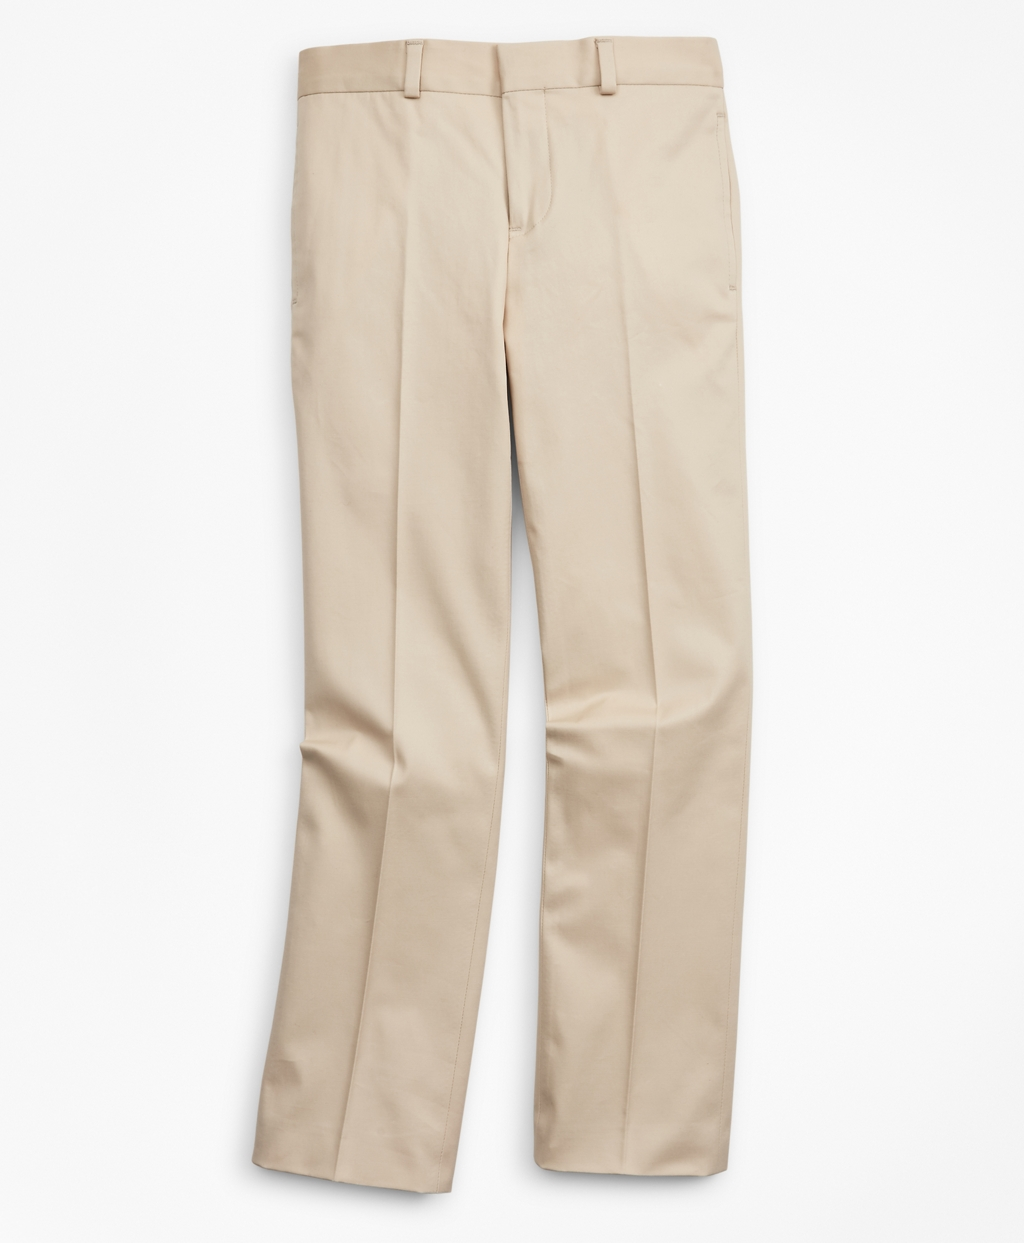 Vintage Style Children's Clothing: Girls, Boys, Baby, Toddler Brooks Brothers Boys Boys Cotton Twill Suit Pants $69.50 AT vintagedancer.com